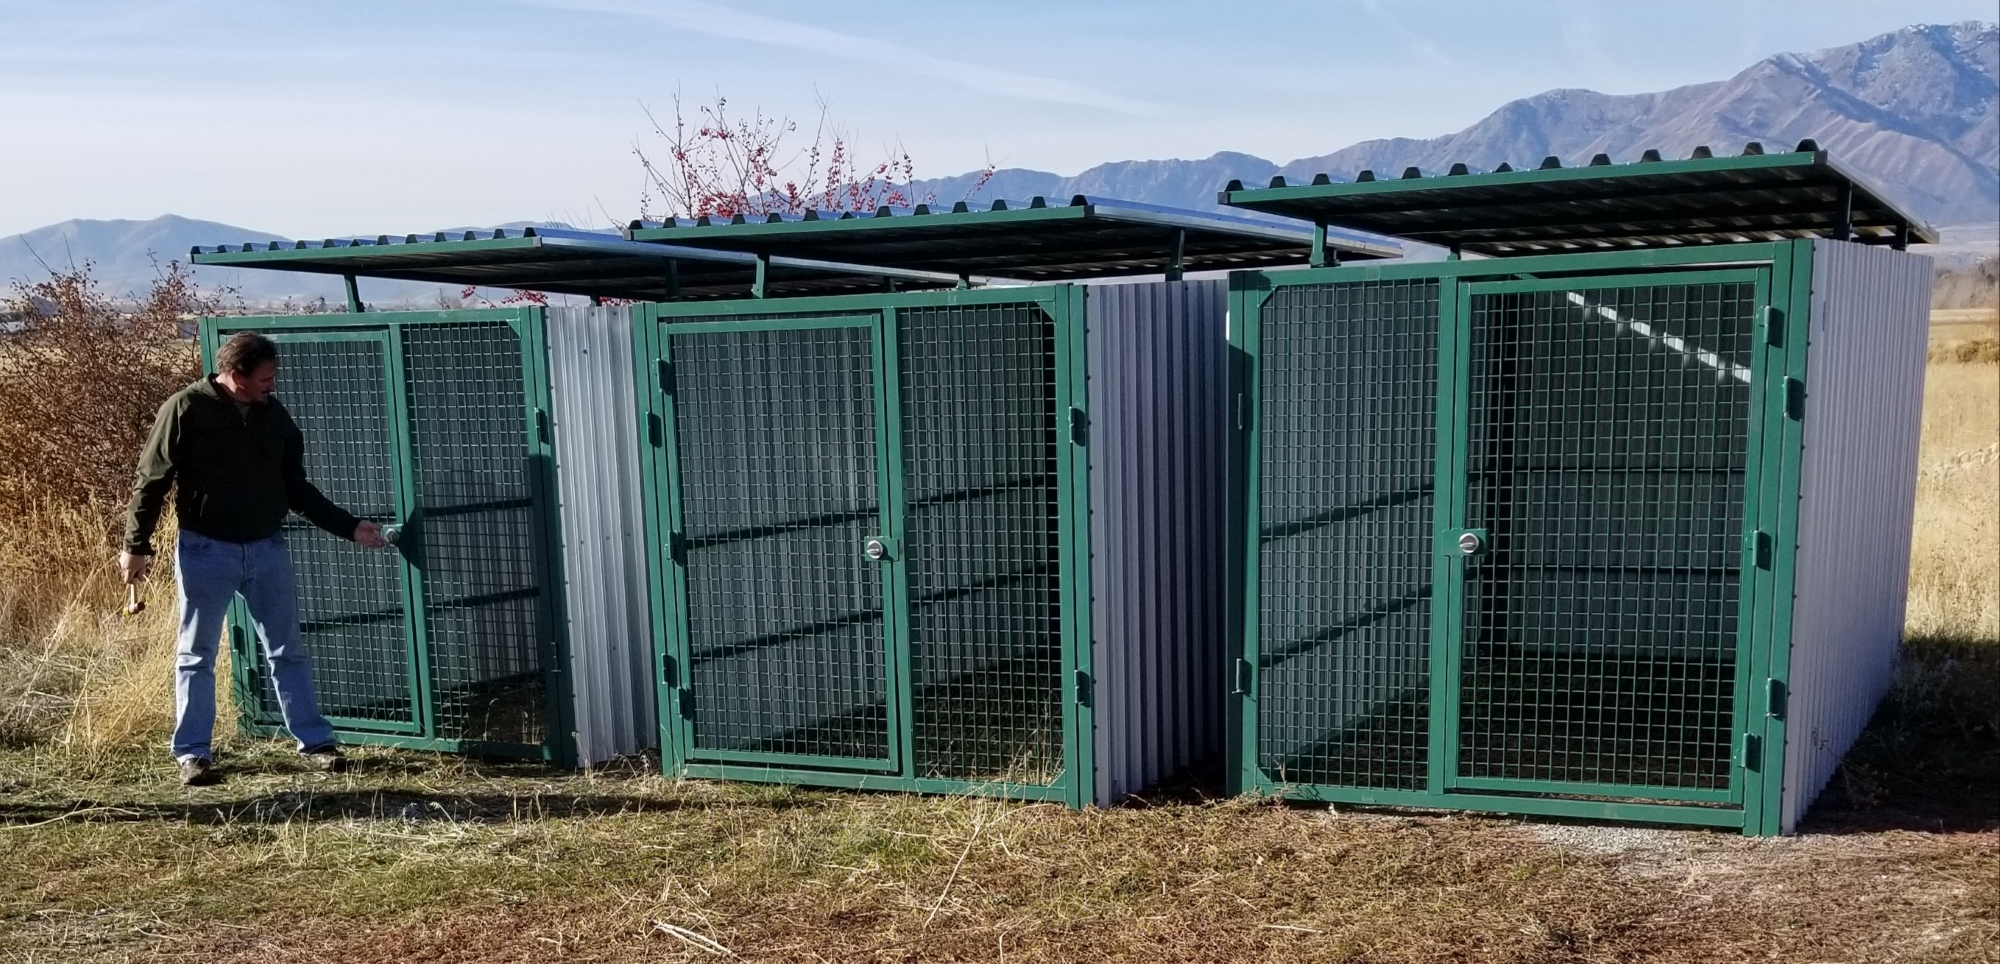 xtreme-outdoor-enclosed-kennels-university-of-Utah-carrymydog.com